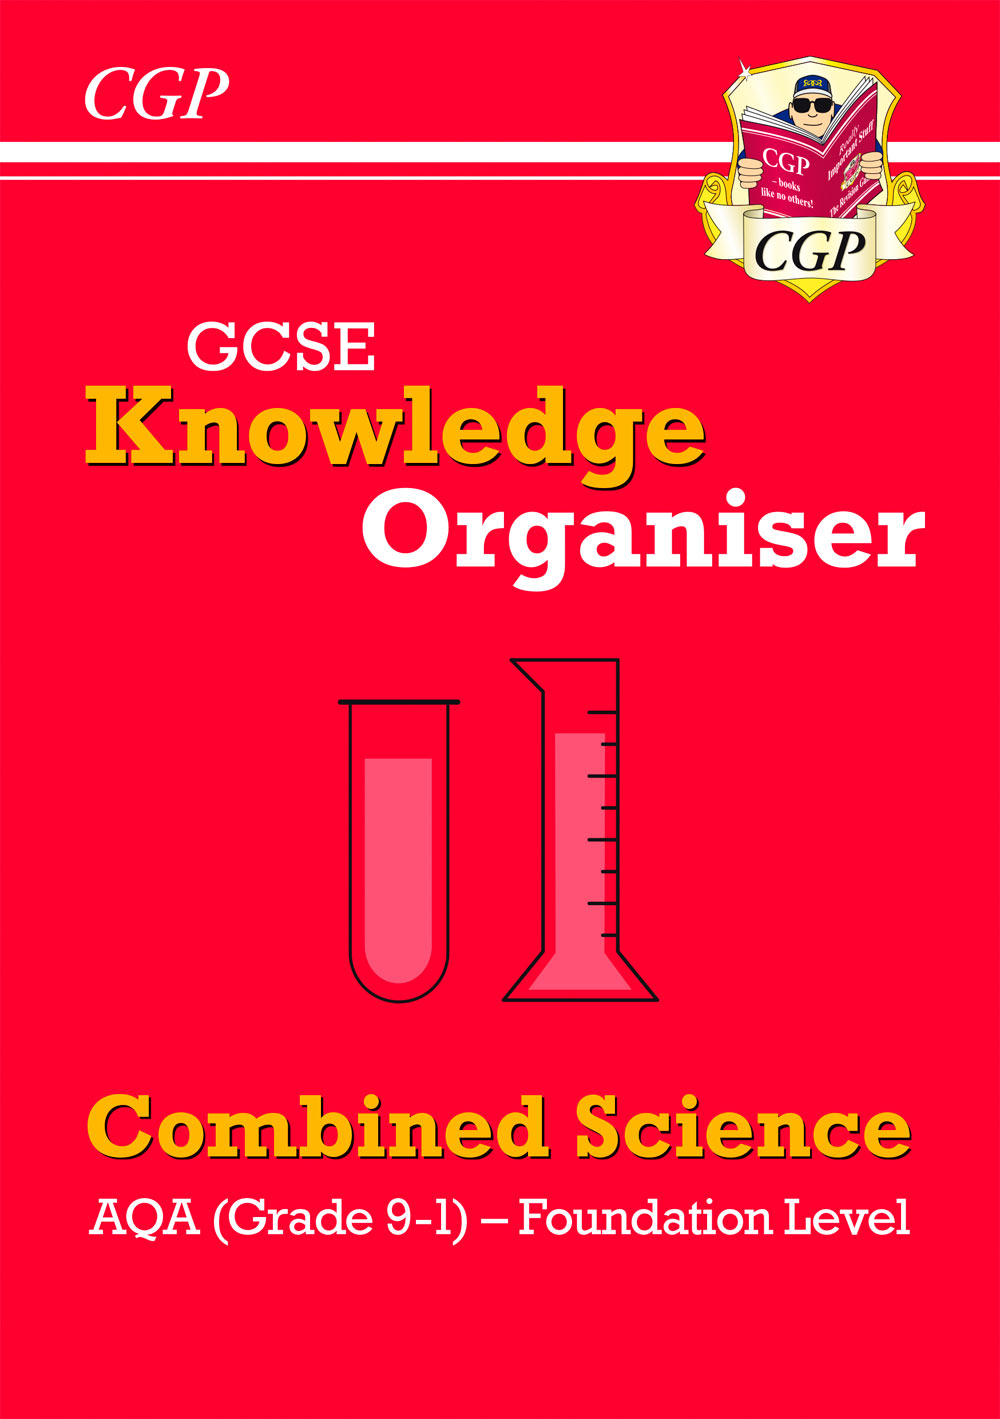 SCAFNO41 - New GCSE Knowledge Organiser: AQA Combined Science - Foundation (Grade 9-1)